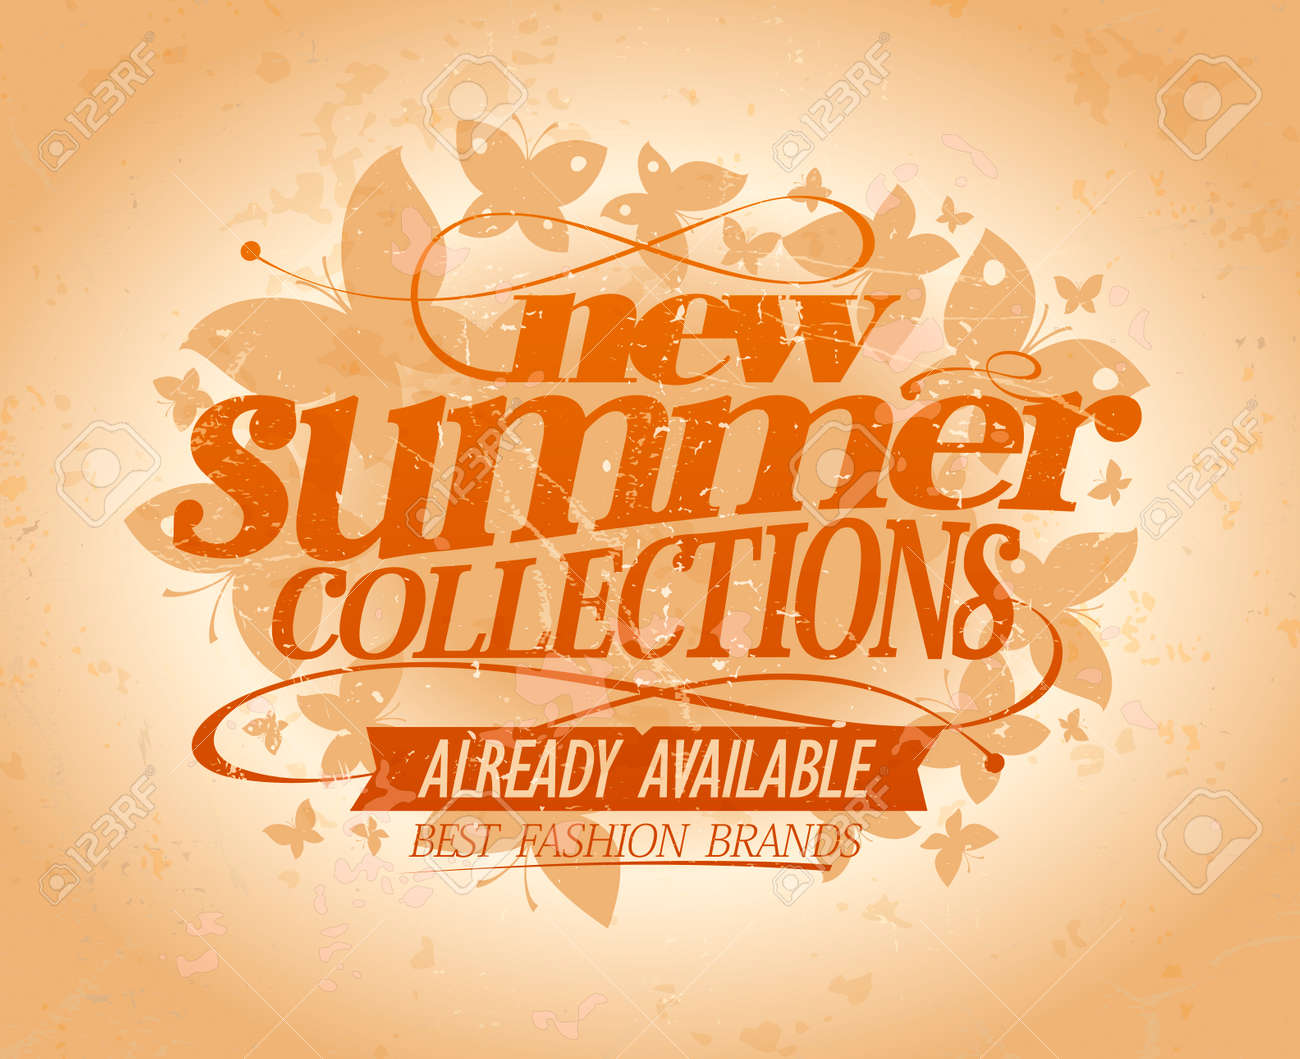 New summer collections vector design, best fashion brands, vintage..